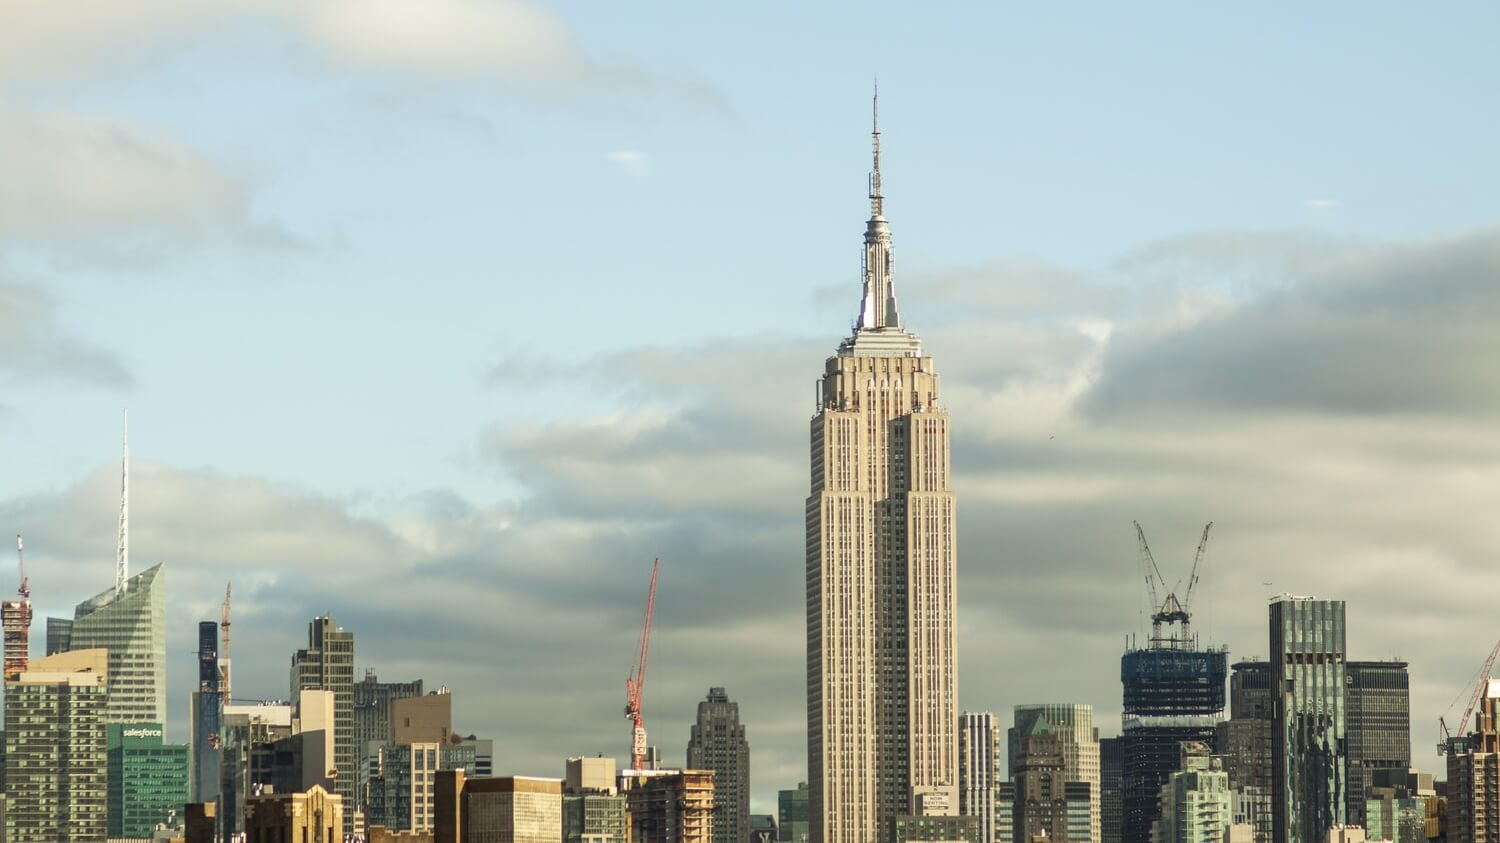 Vegan Starbucks Options are Coming to The Empire State Building